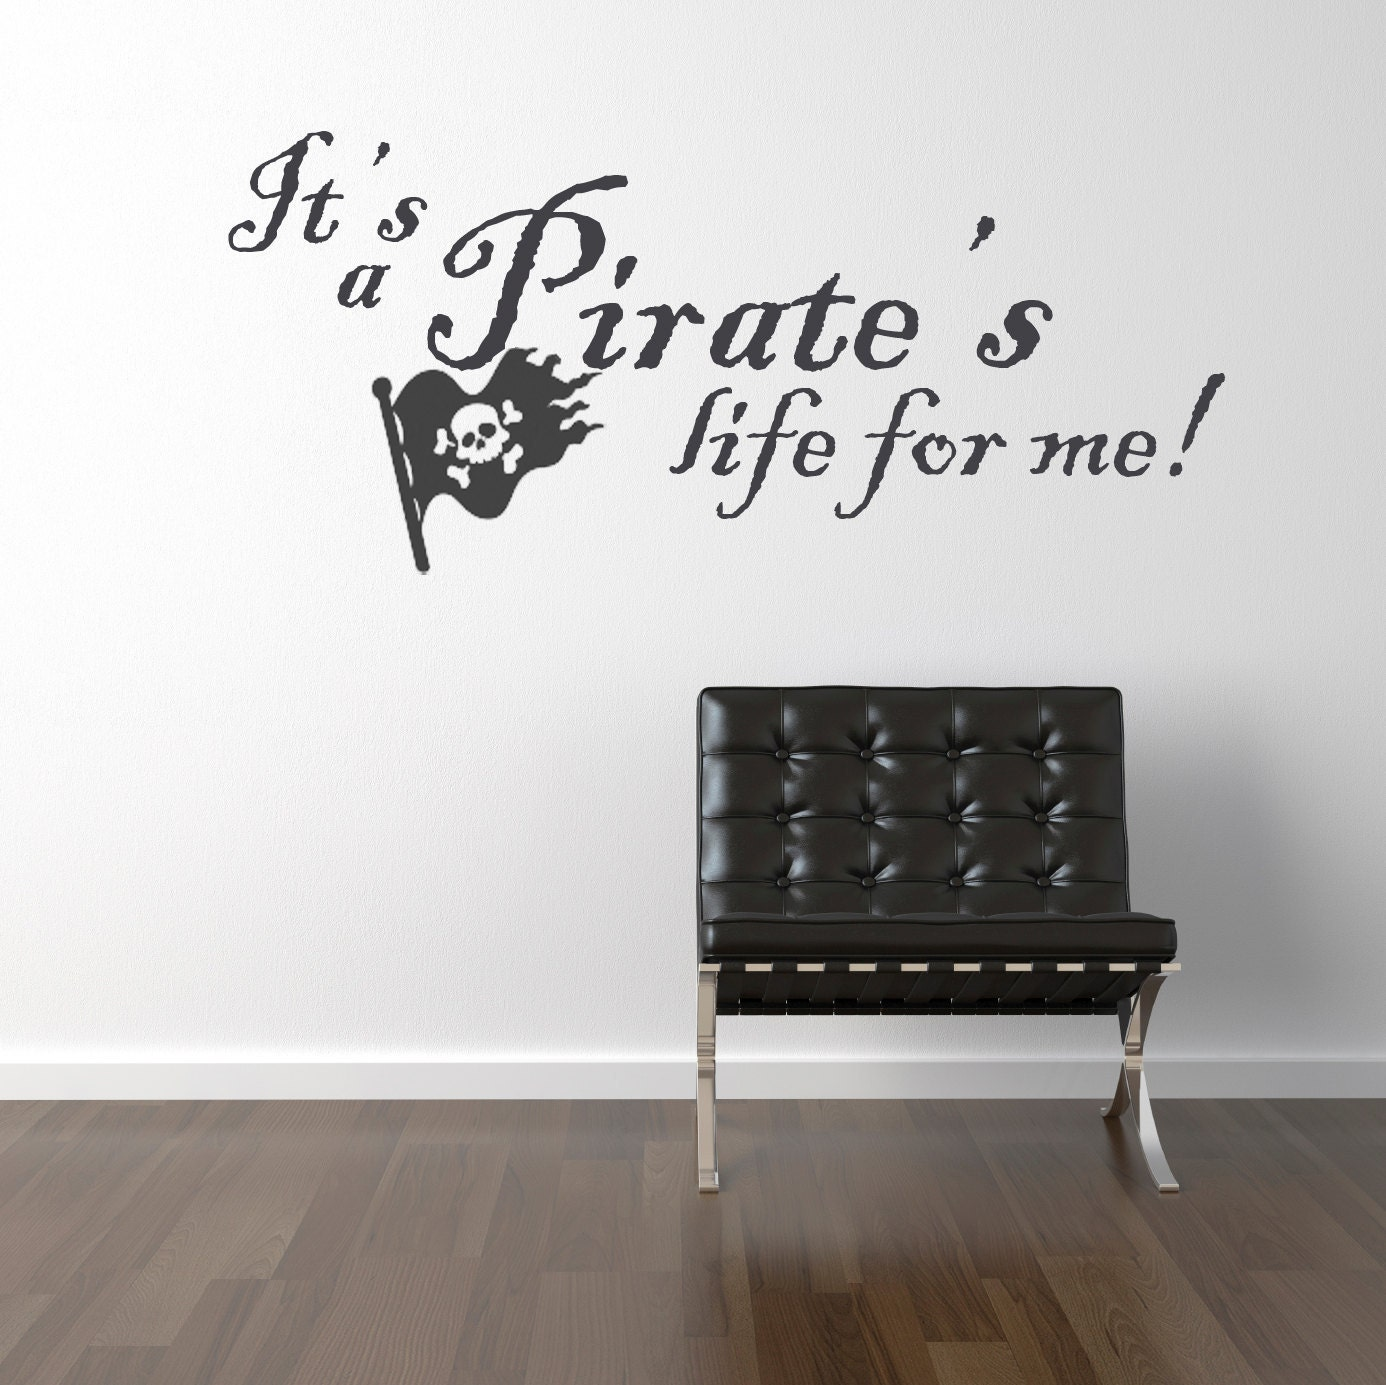 pirate 39 s life jolly roger vinyl wall decals stickers art. Black Bedroom Furniture Sets. Home Design Ideas